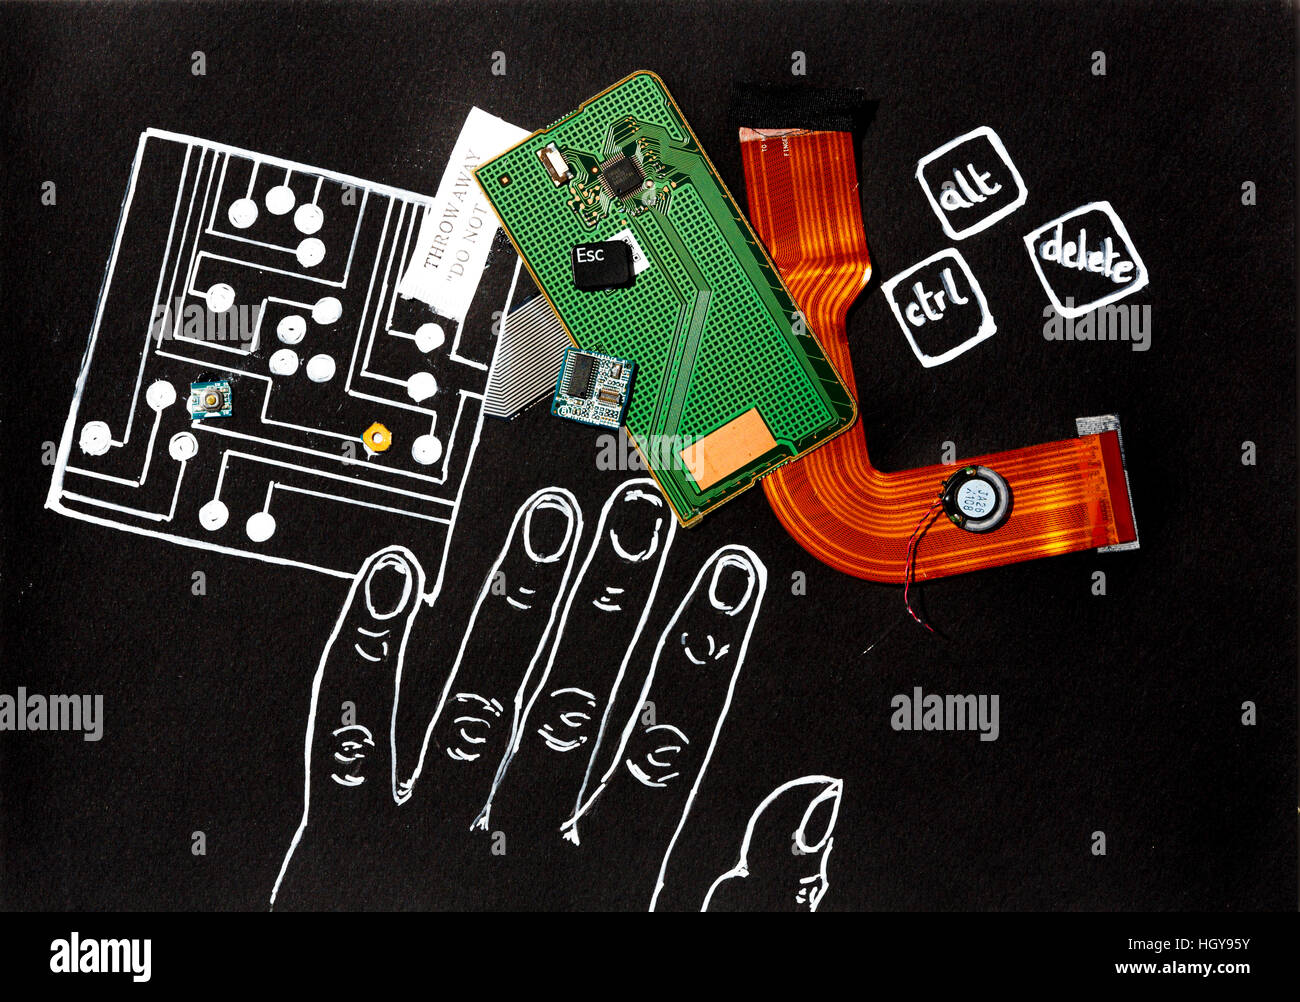 Computer circuit board and pieces laid on a drawing of an outline of a hand black background white outline - Stock Image